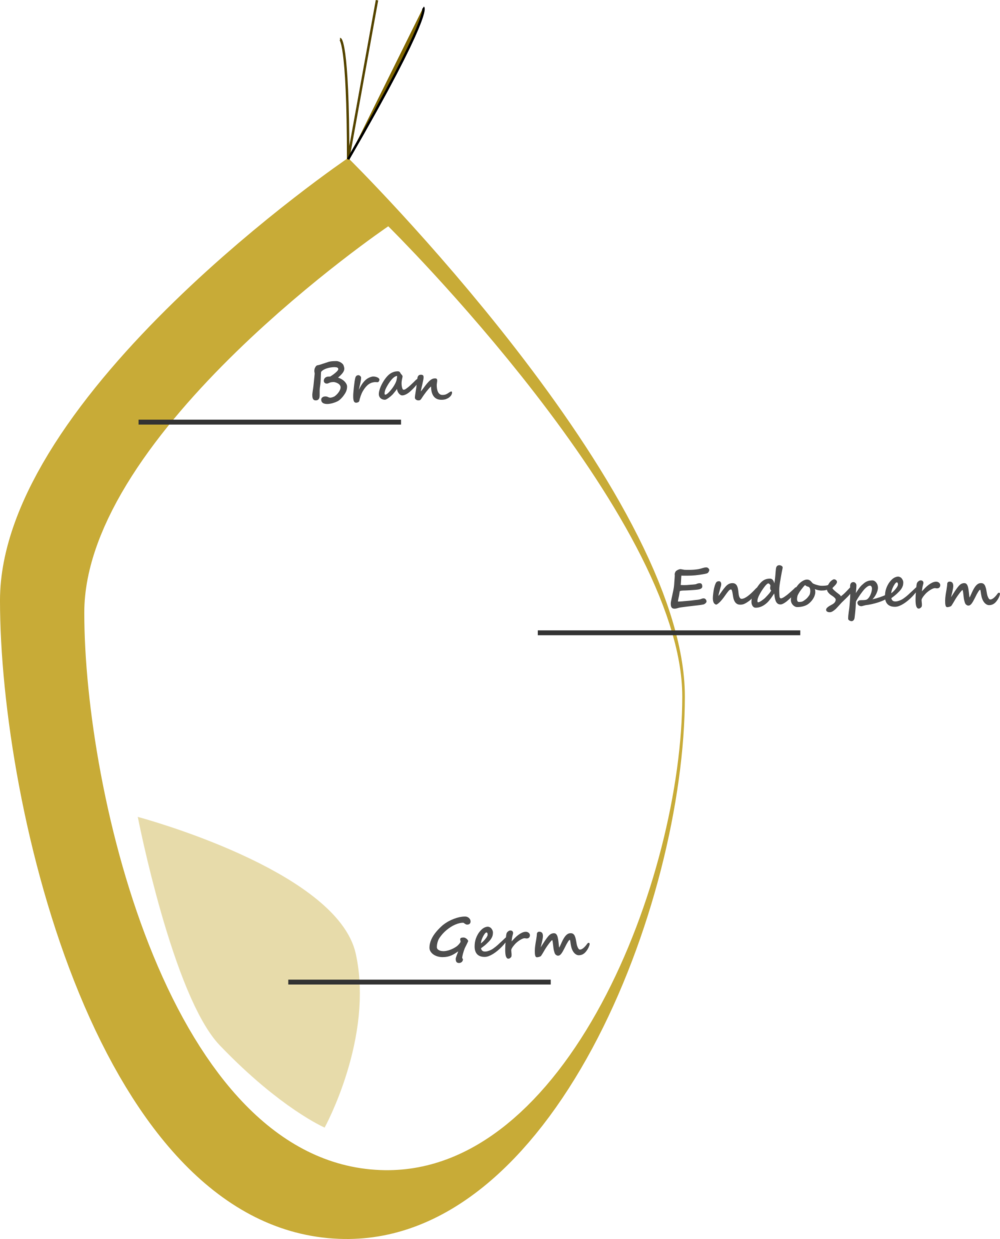 Graphical representation of the section of a wheat seed